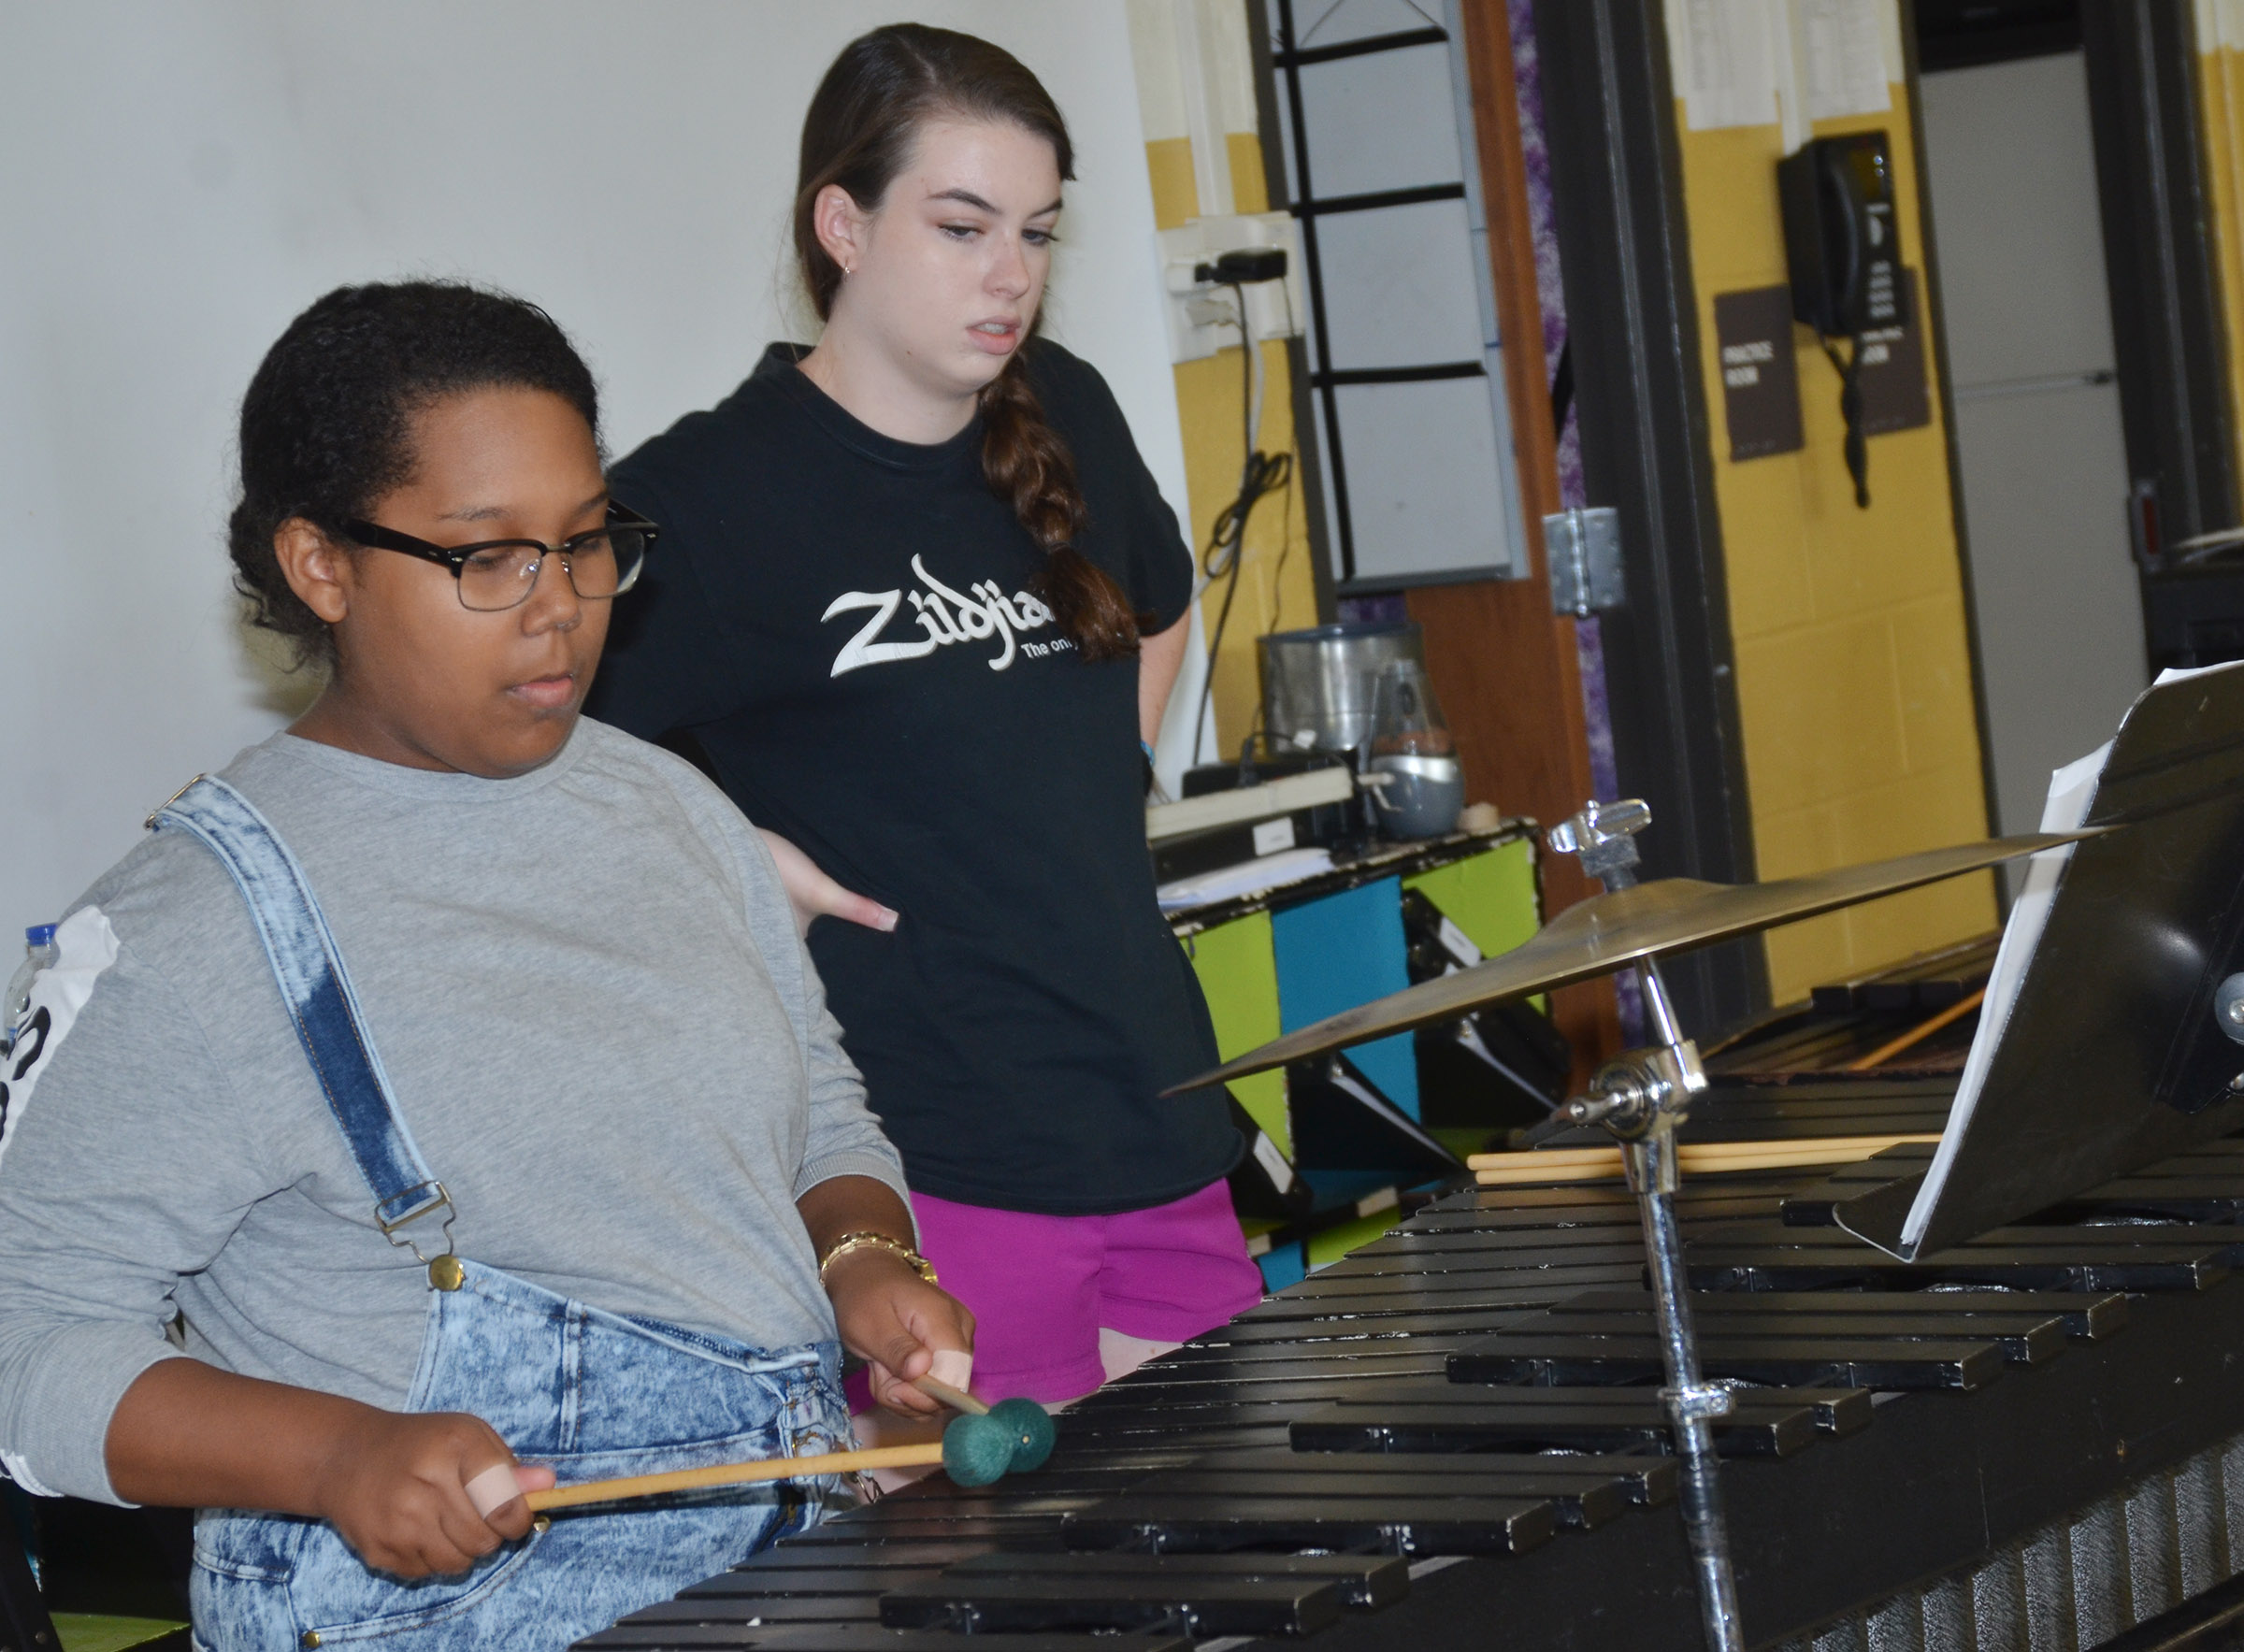 CHS sophomore Zaria Cowan practices, with some help from Laura Lamb, a marching band member who graduated from CHS last May.